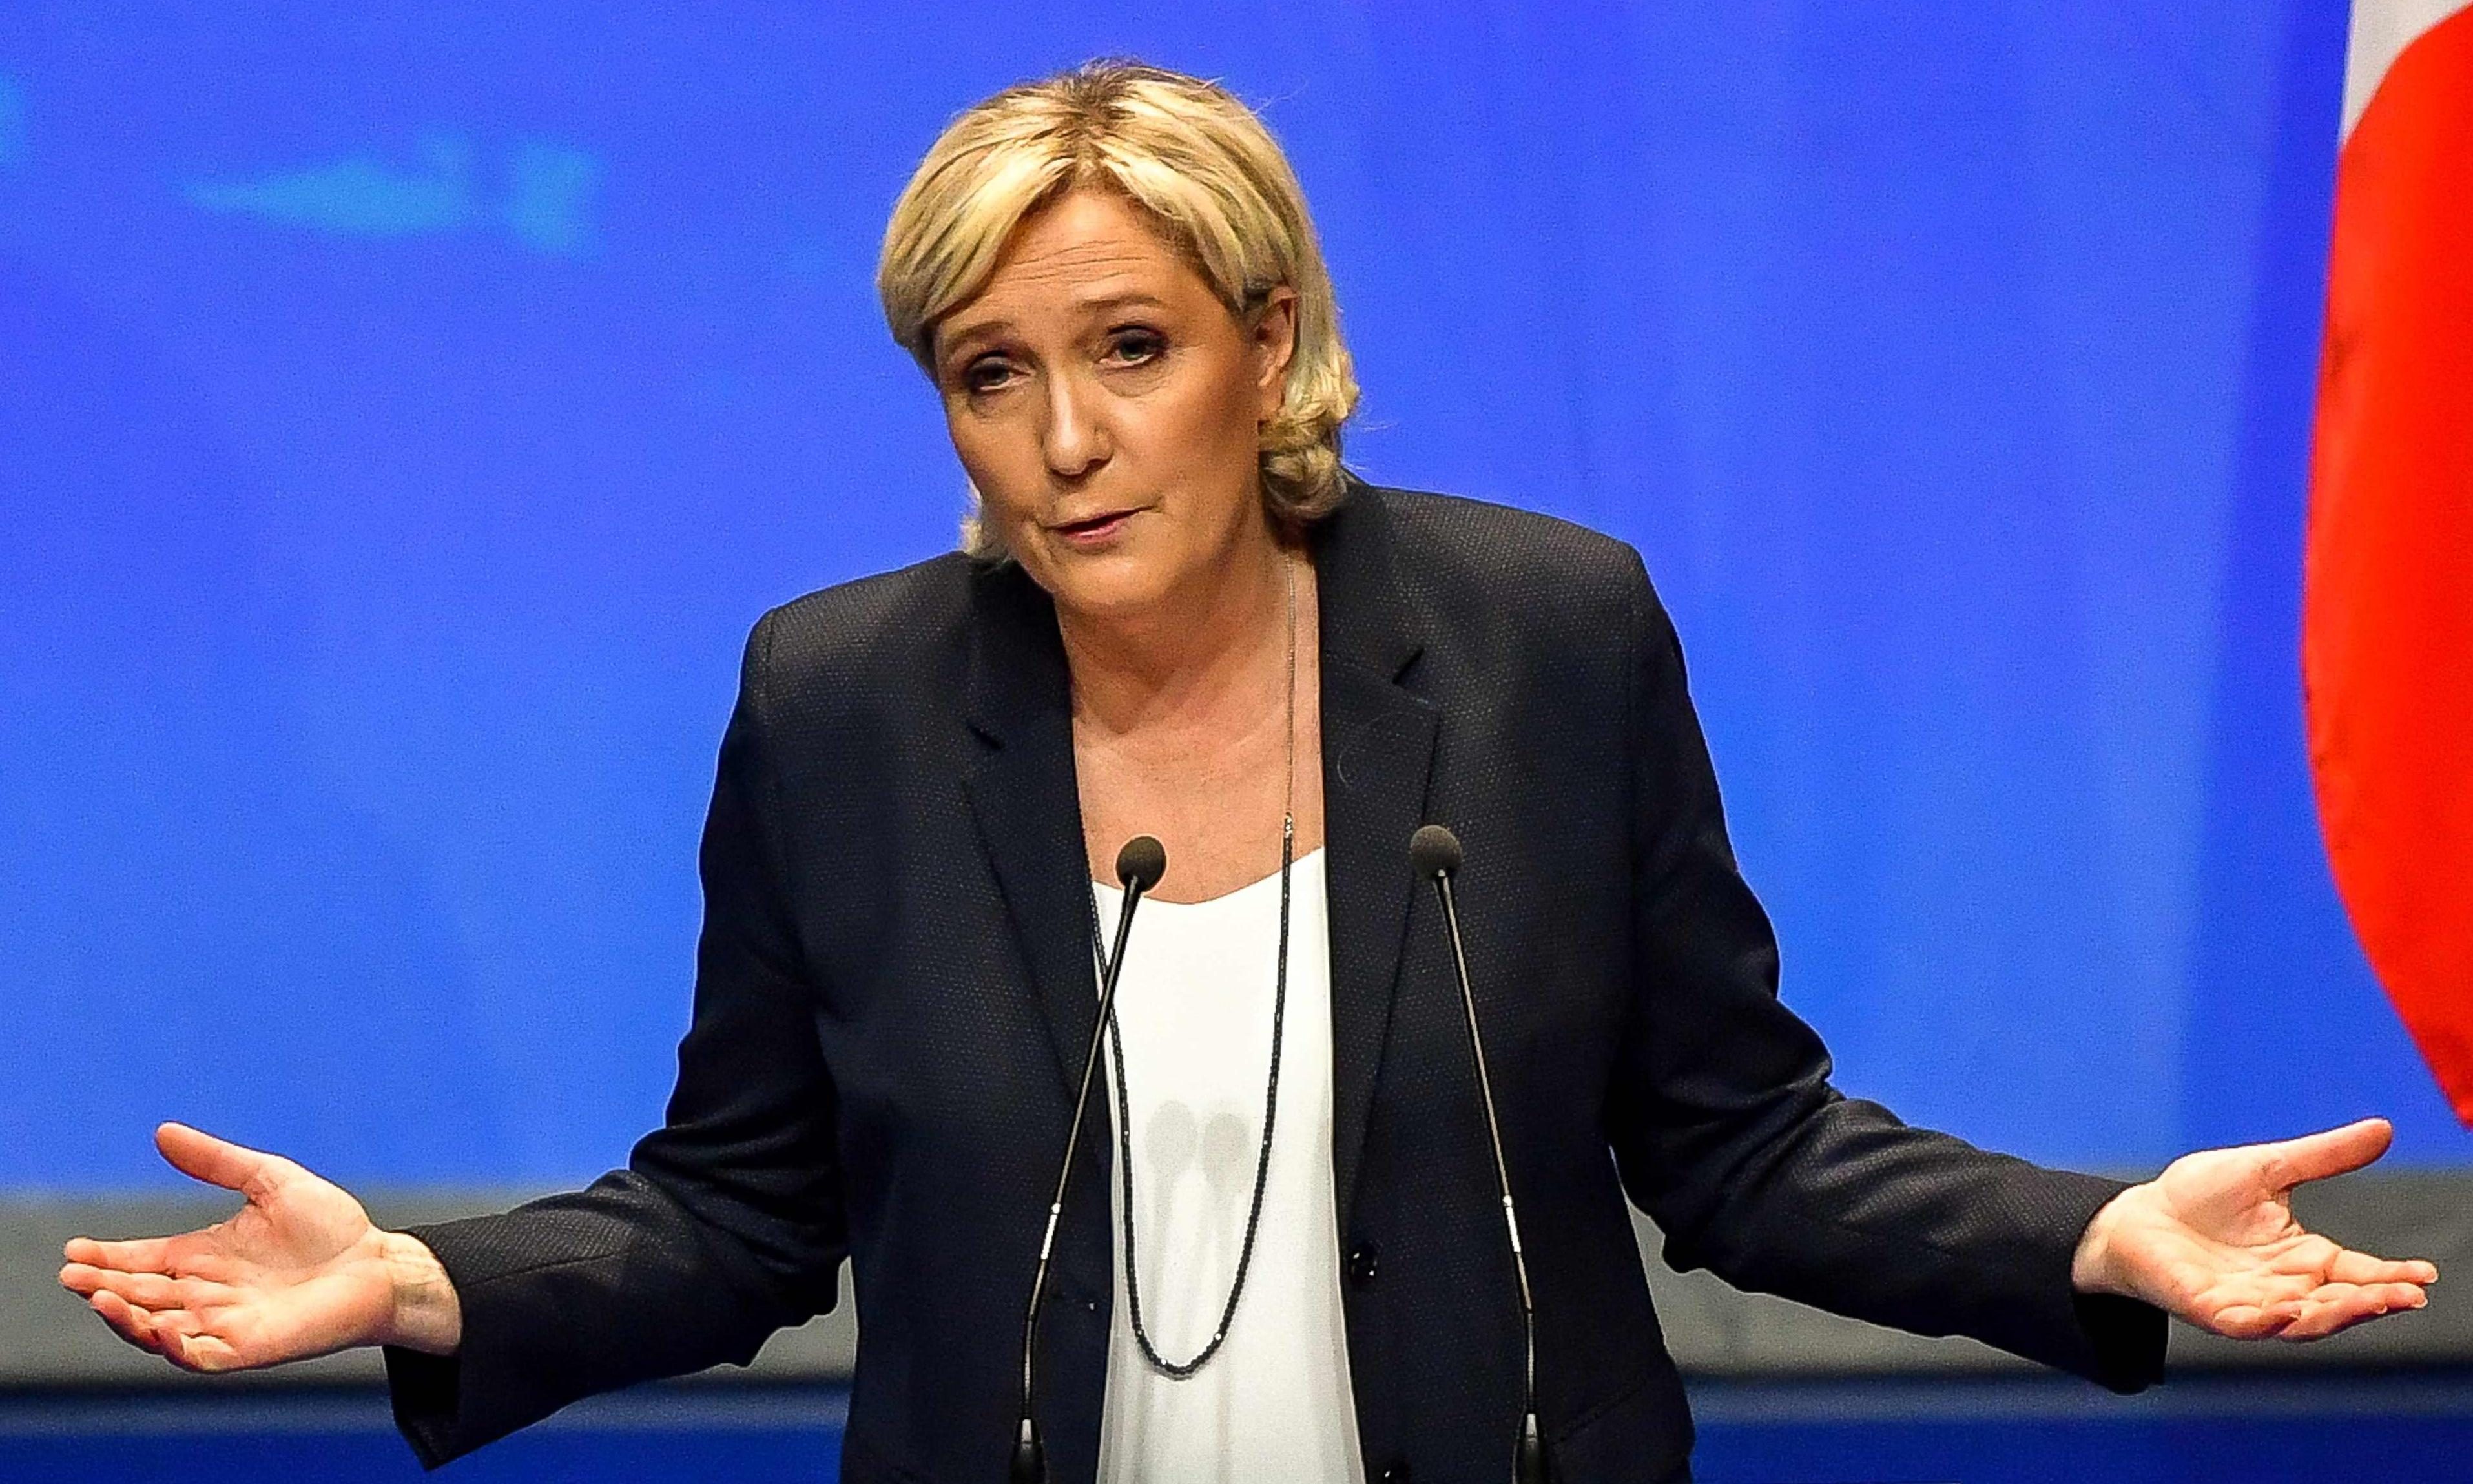 Marine Le Pen makes 'OK' hand gesture used by white supremacists